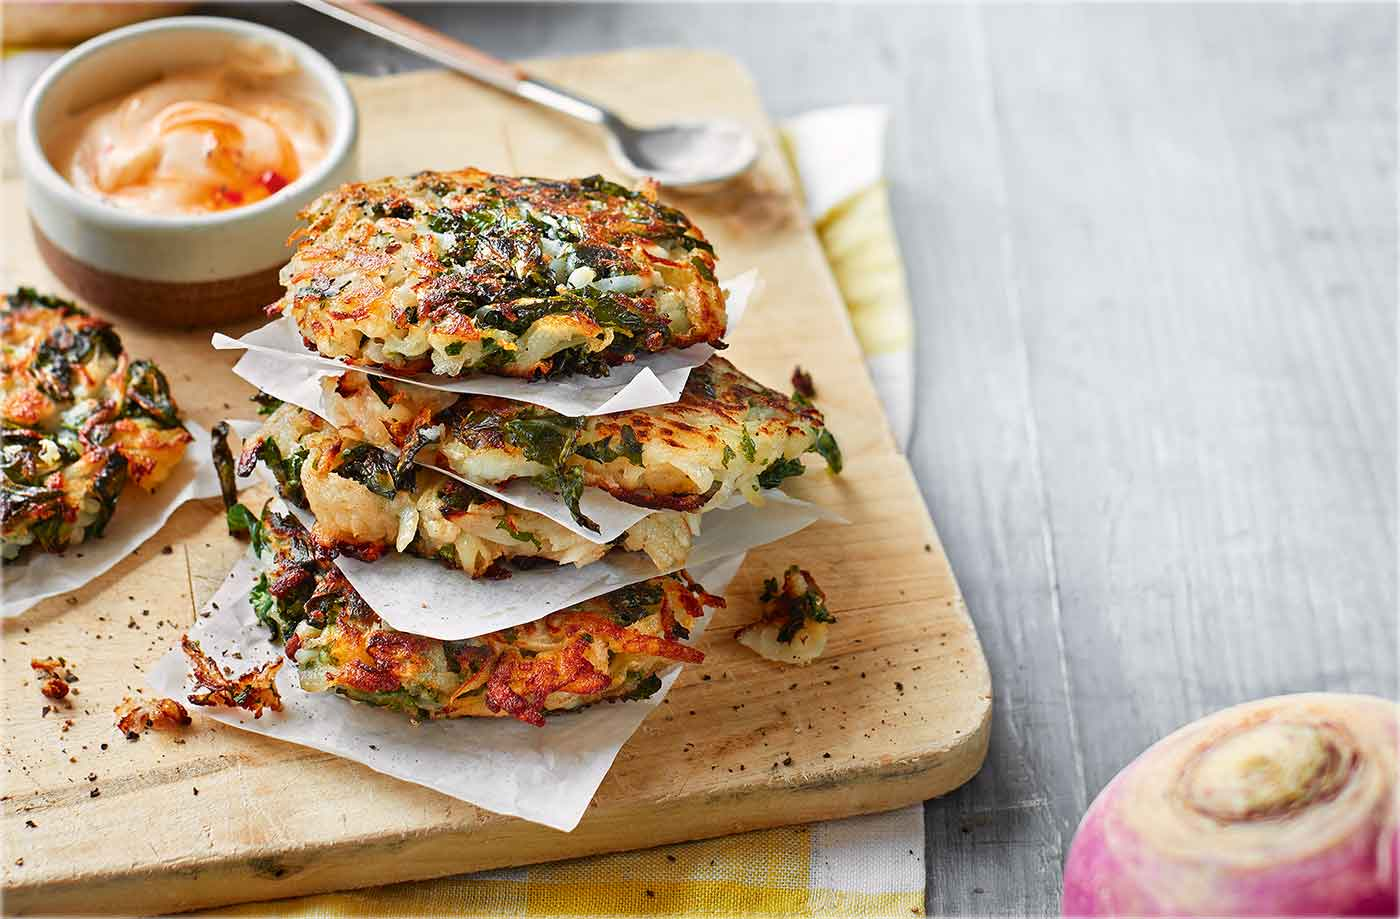 Turnip and kale rostis with chilli mayo